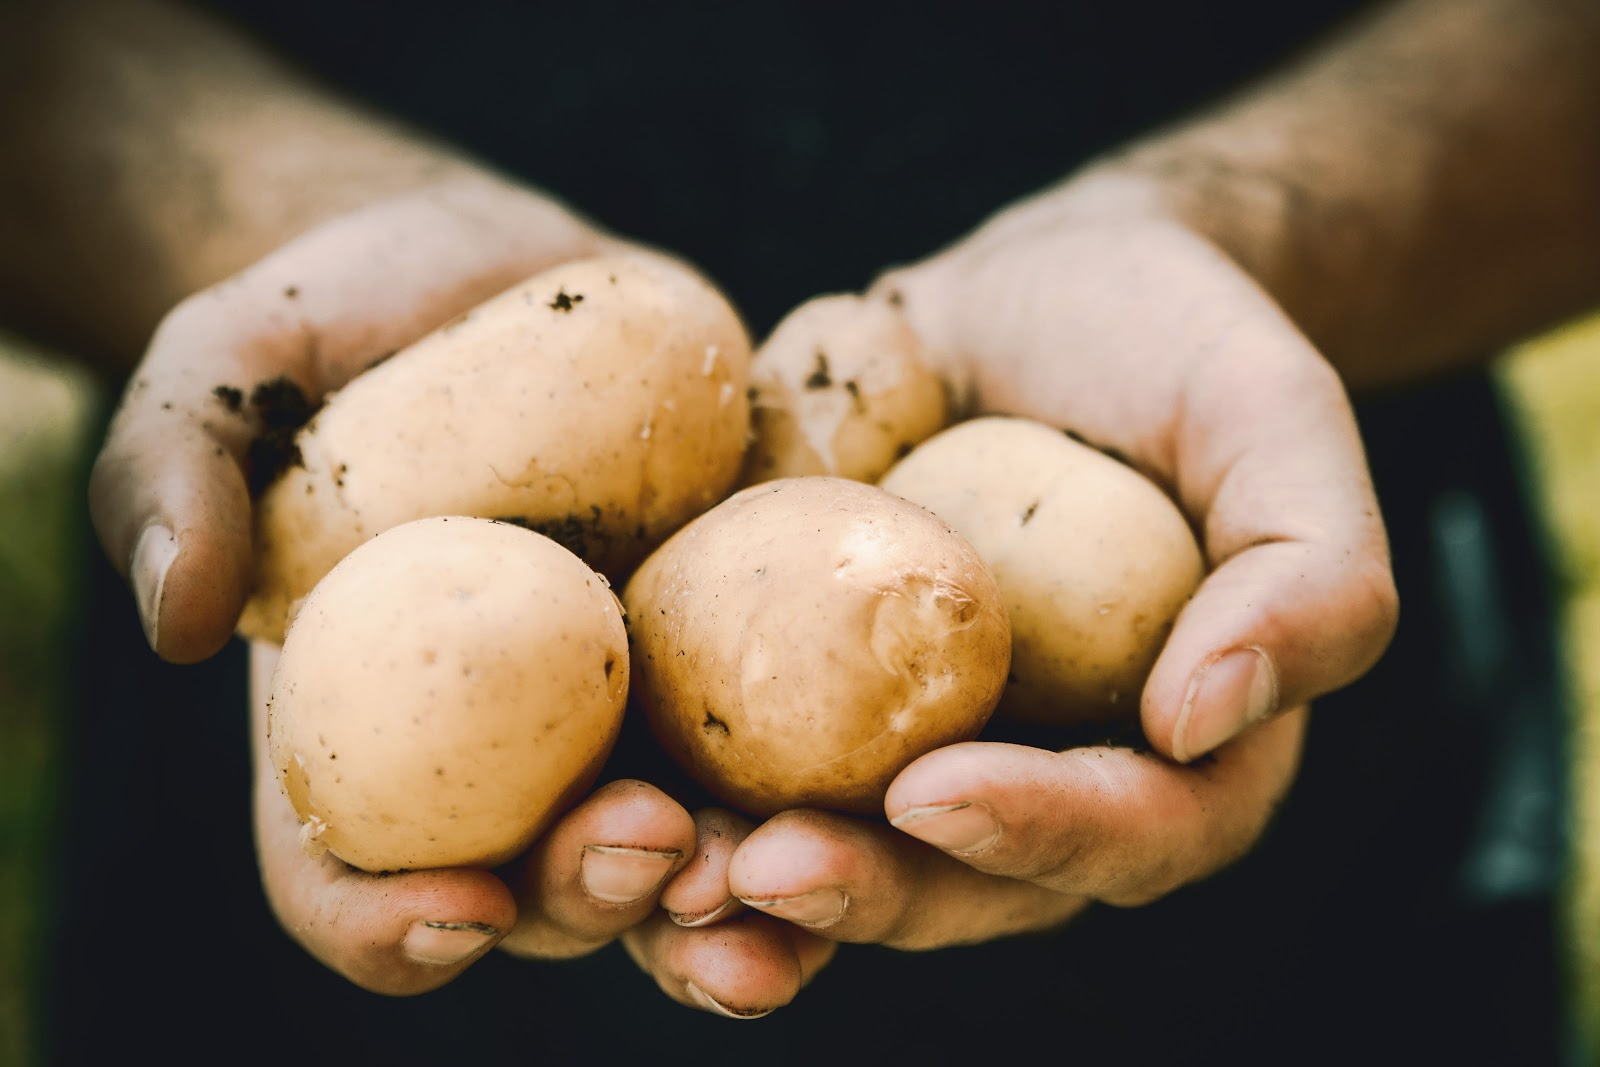 A Homage To The Potato: 10 Deliciously Nutritious Facts On A Friendly Food % - % The Voice Of Woman